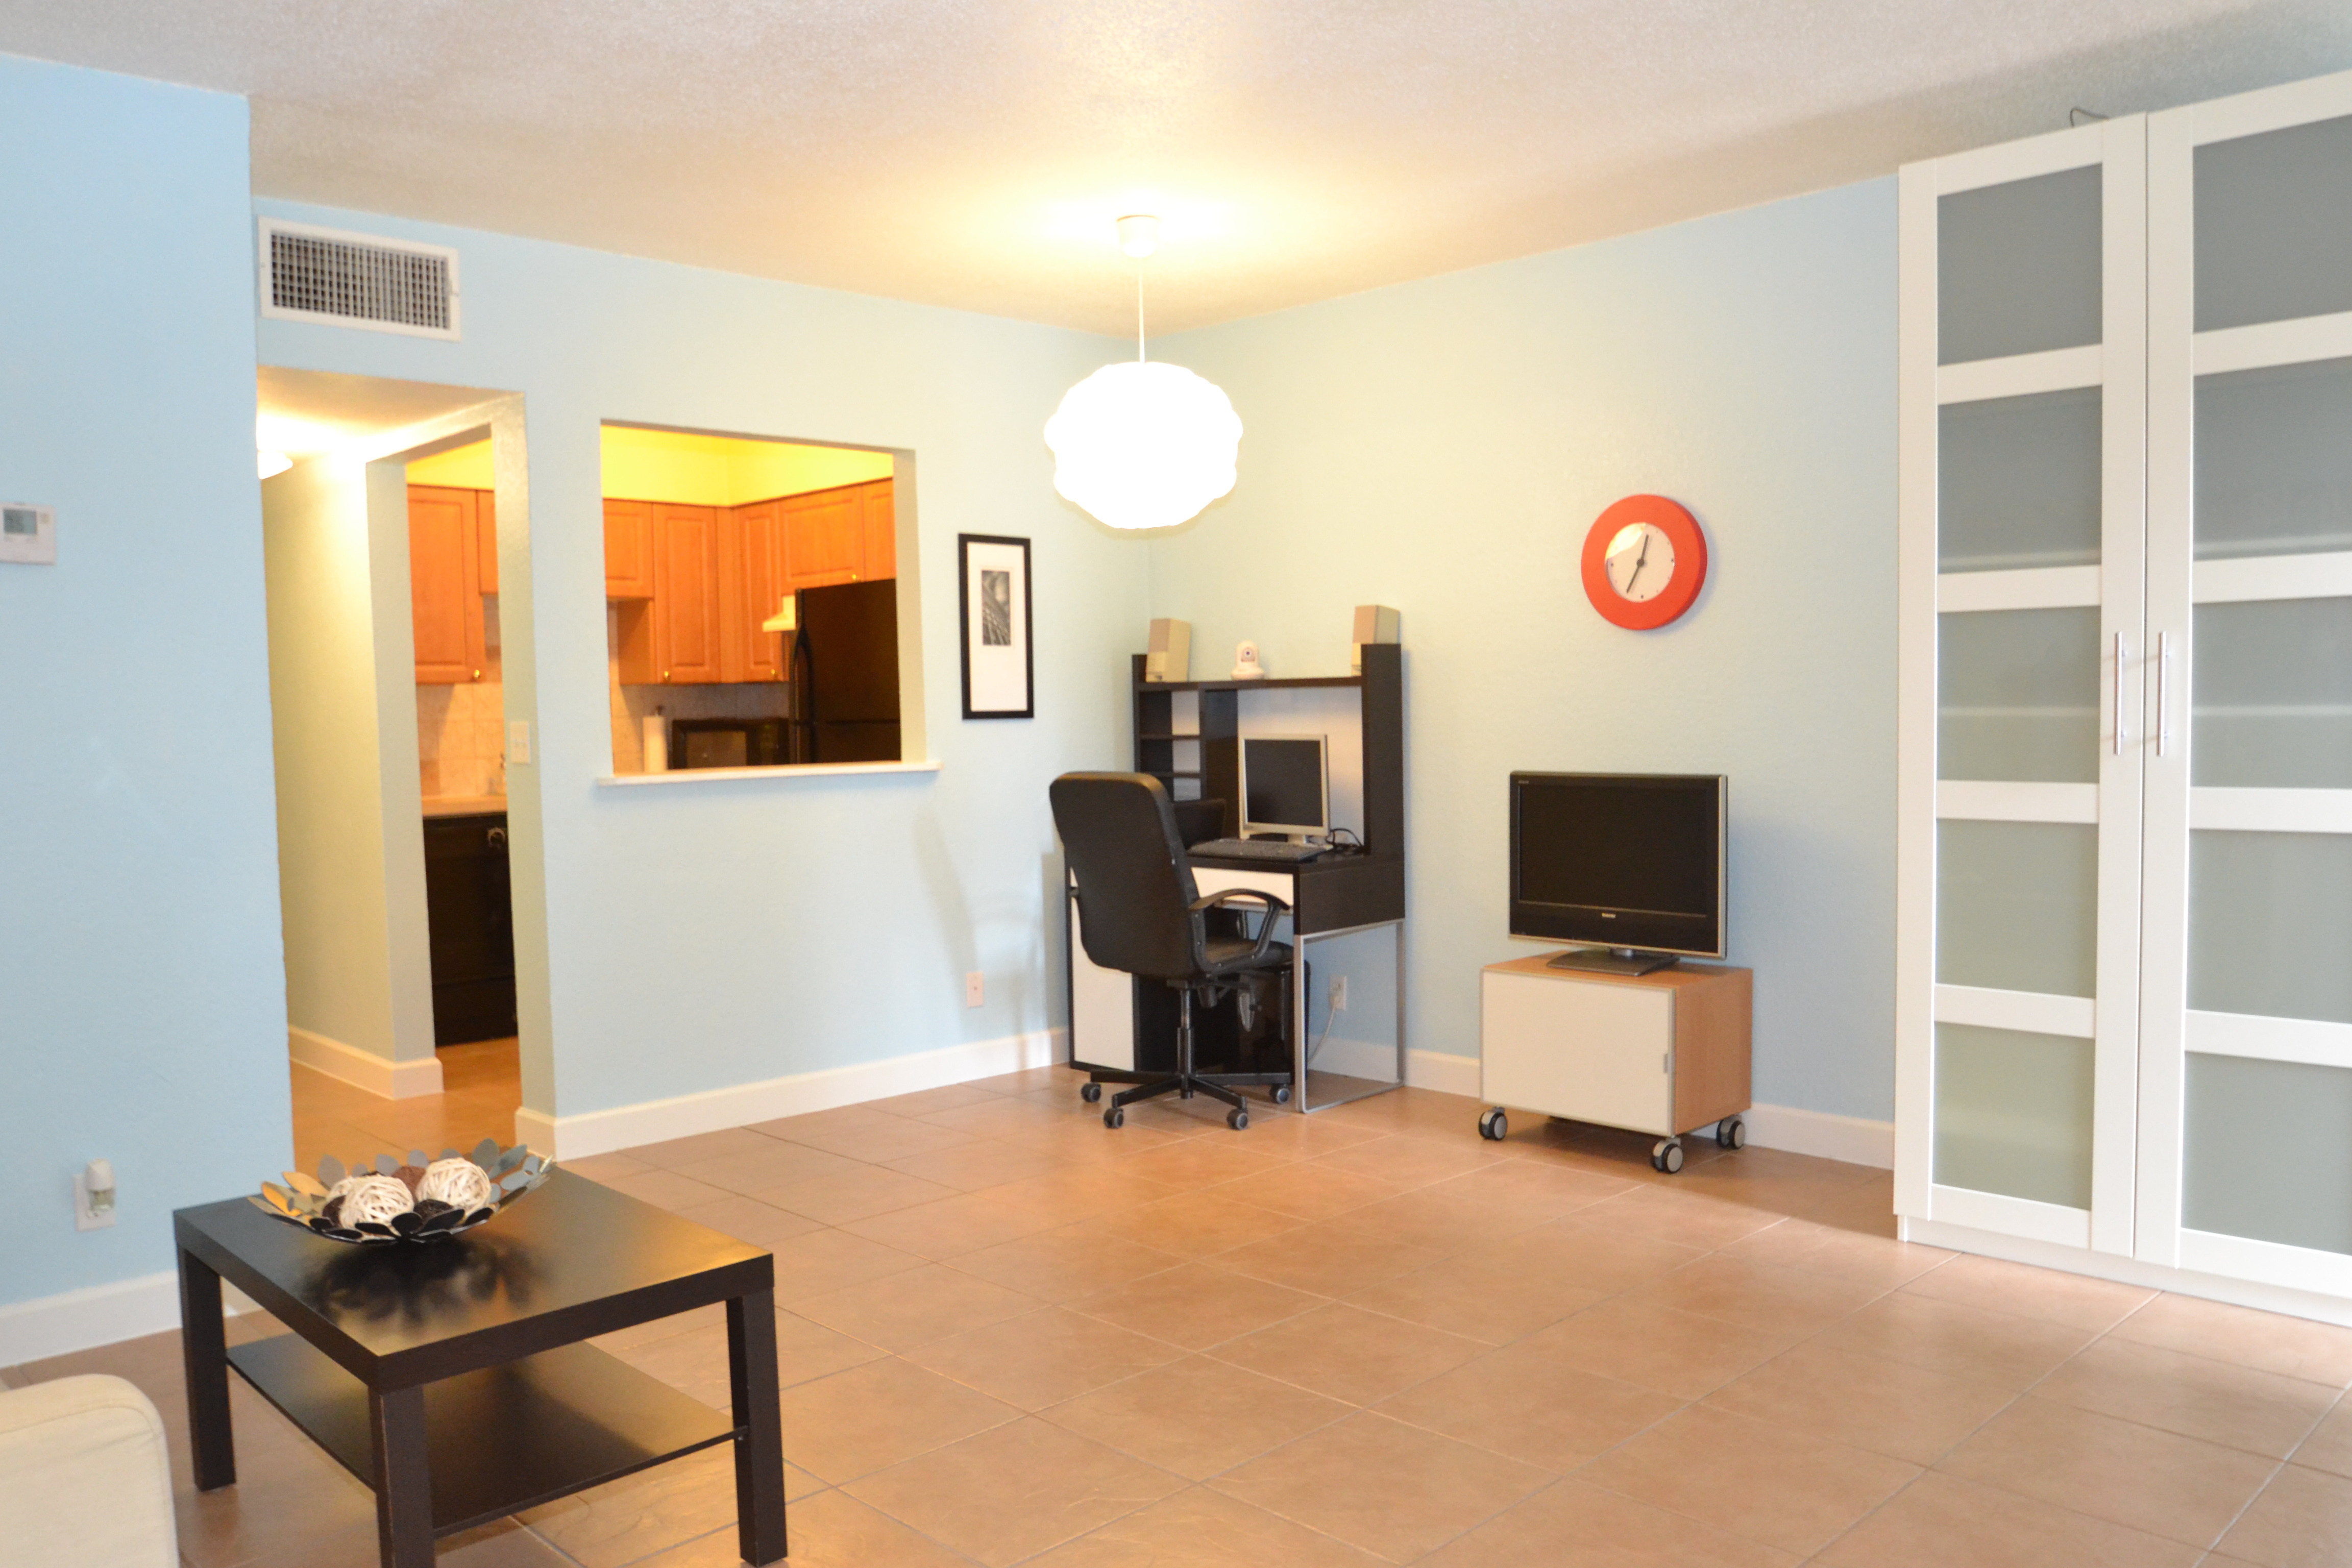 Living Room of Condo for Sale in Wilton Manors, Fl